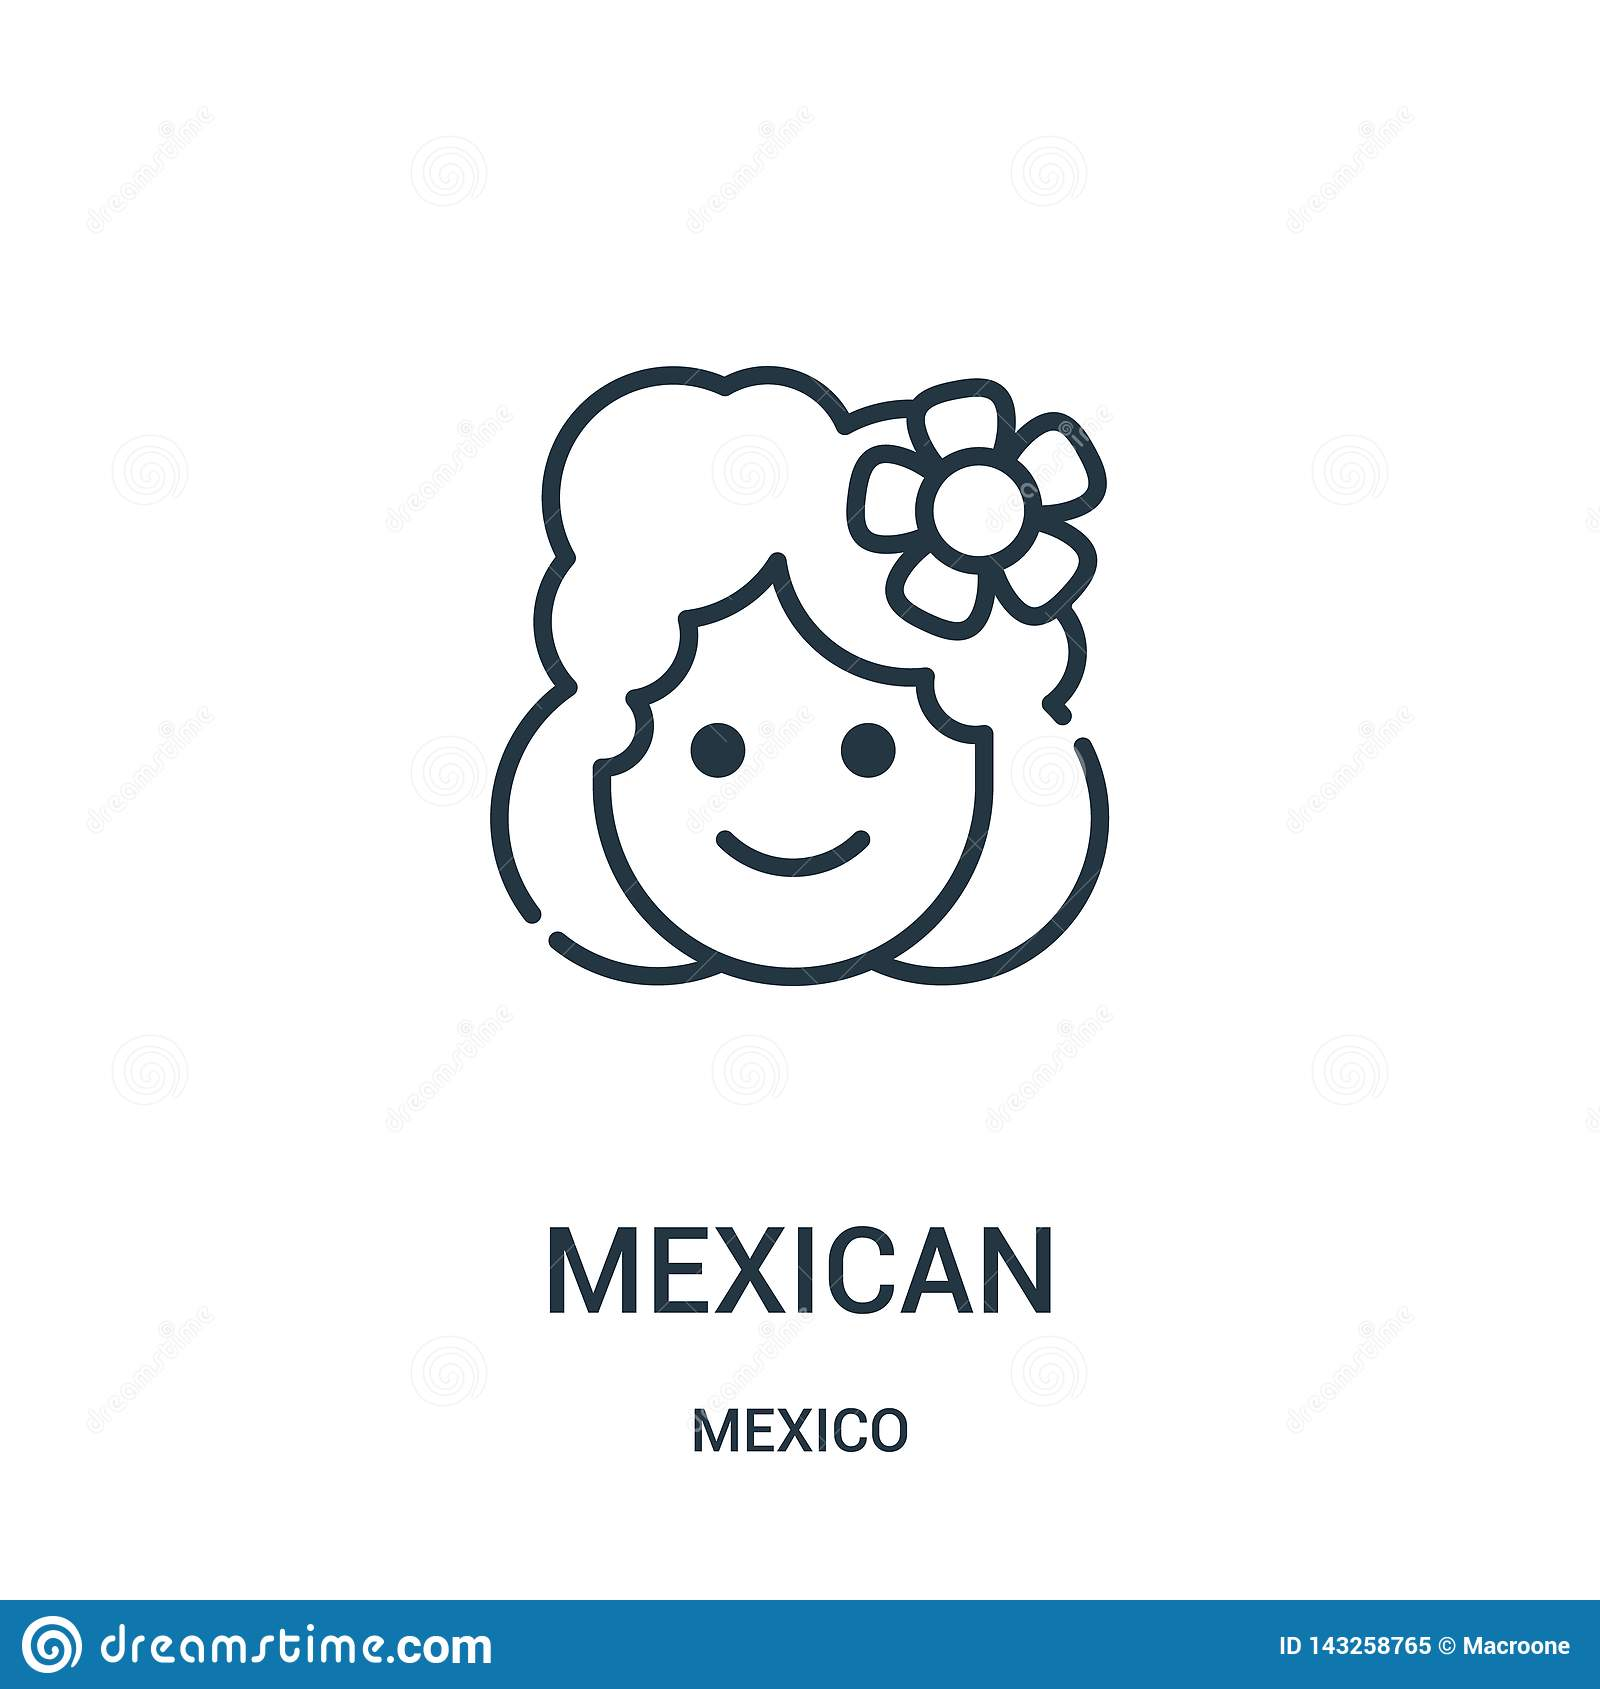 mexican icon vector from mexico collection. Thin line mexican outline icon vector illustration